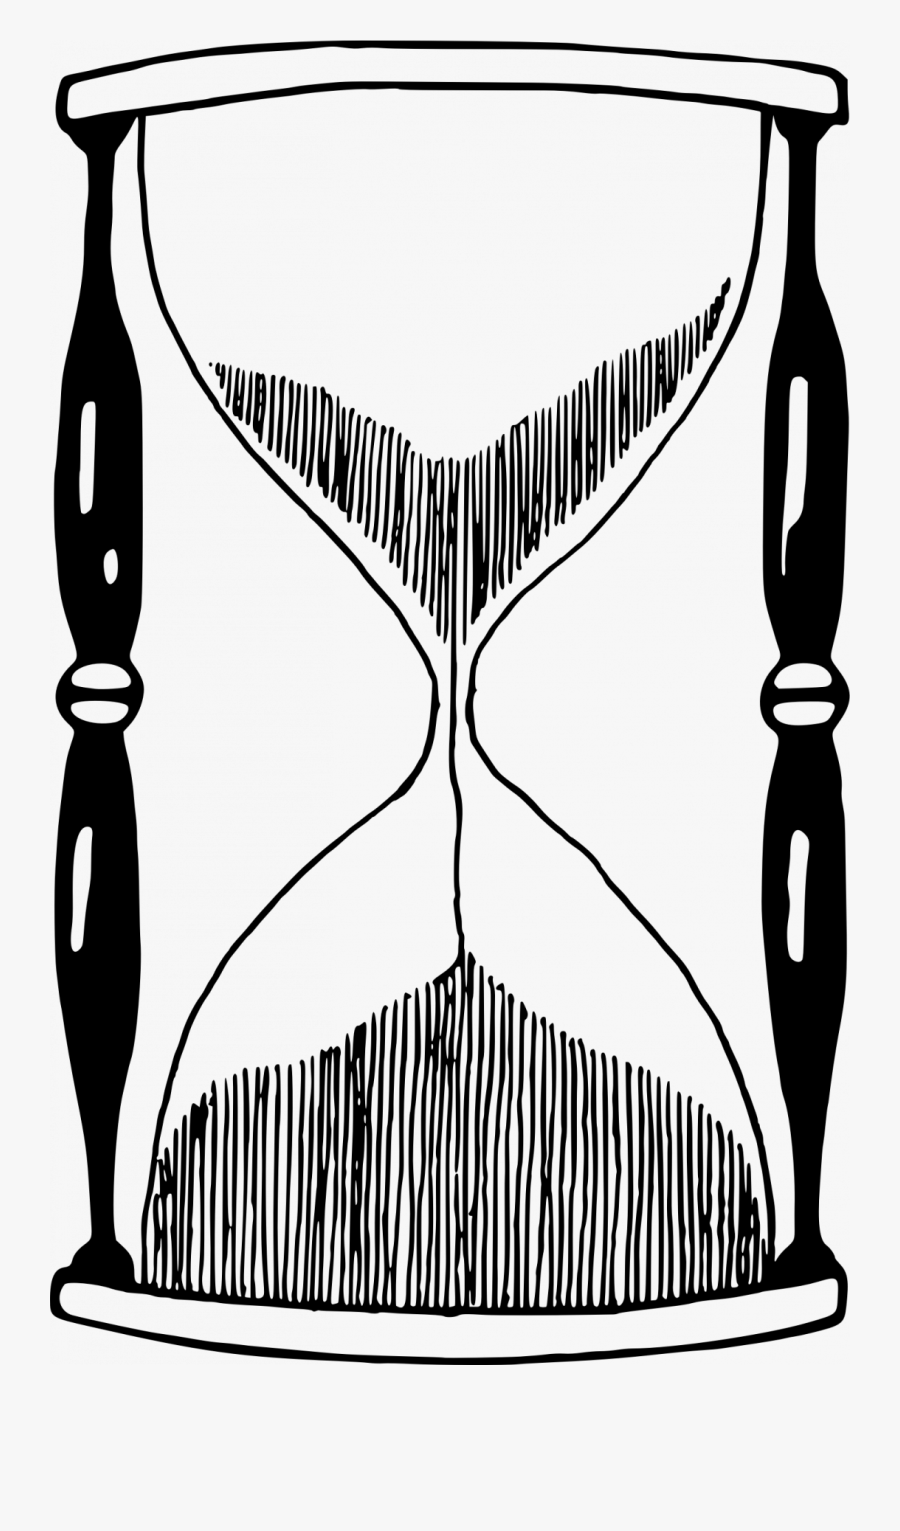 Hourglass Drawing Png, Transparent Clipart